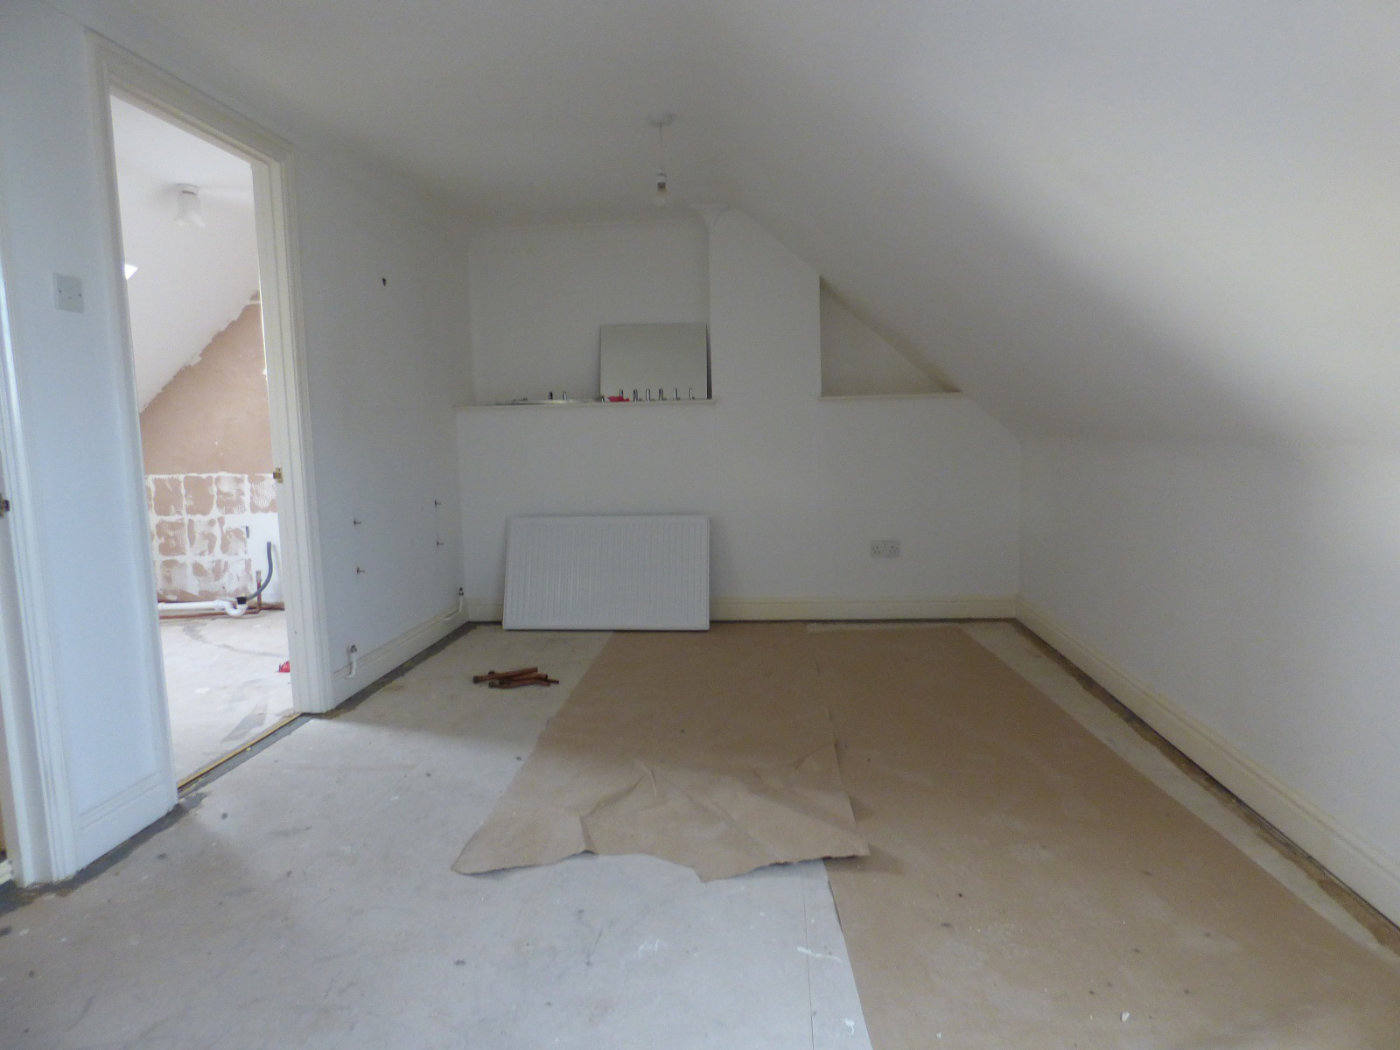 New holiday cottage prep in Wroxham